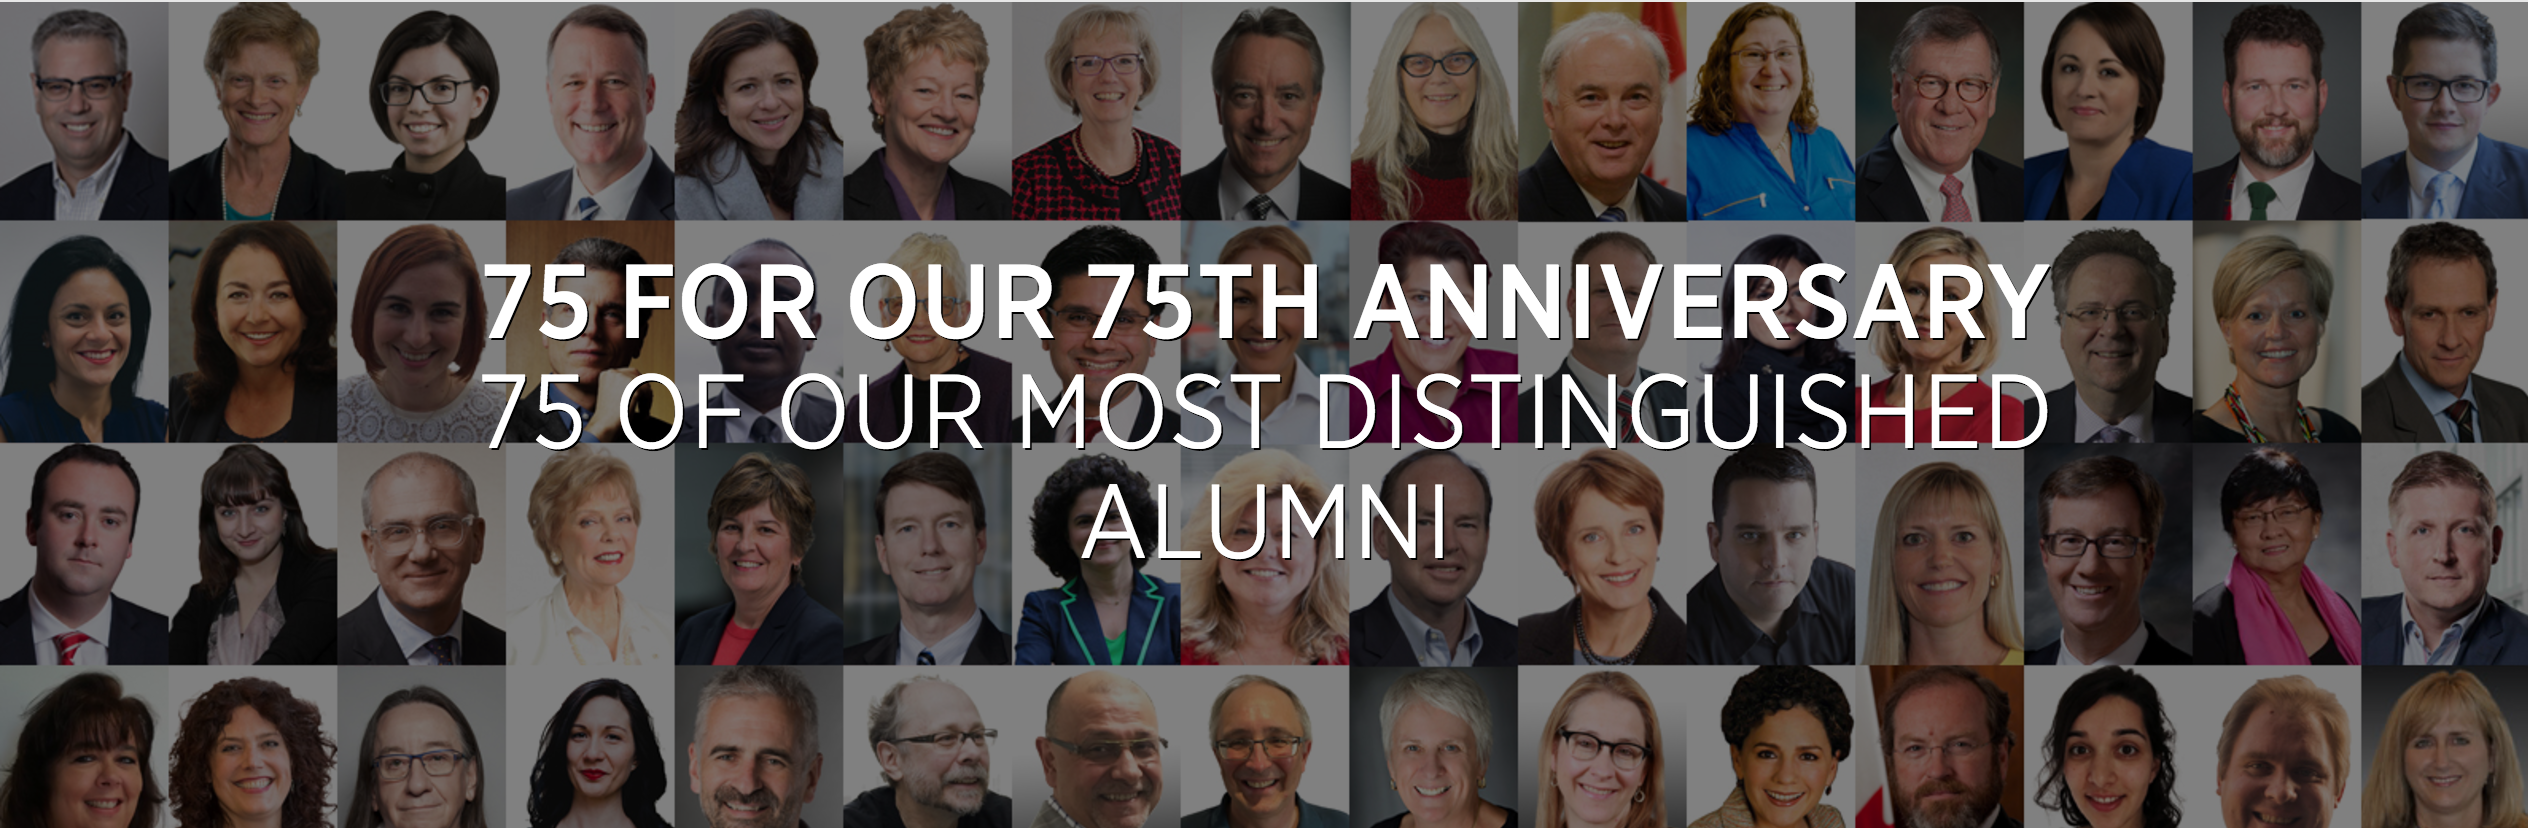 IRIN Director recognized by Carleton University as one of seventy-five most inspiring alumni on 75th Anniversary